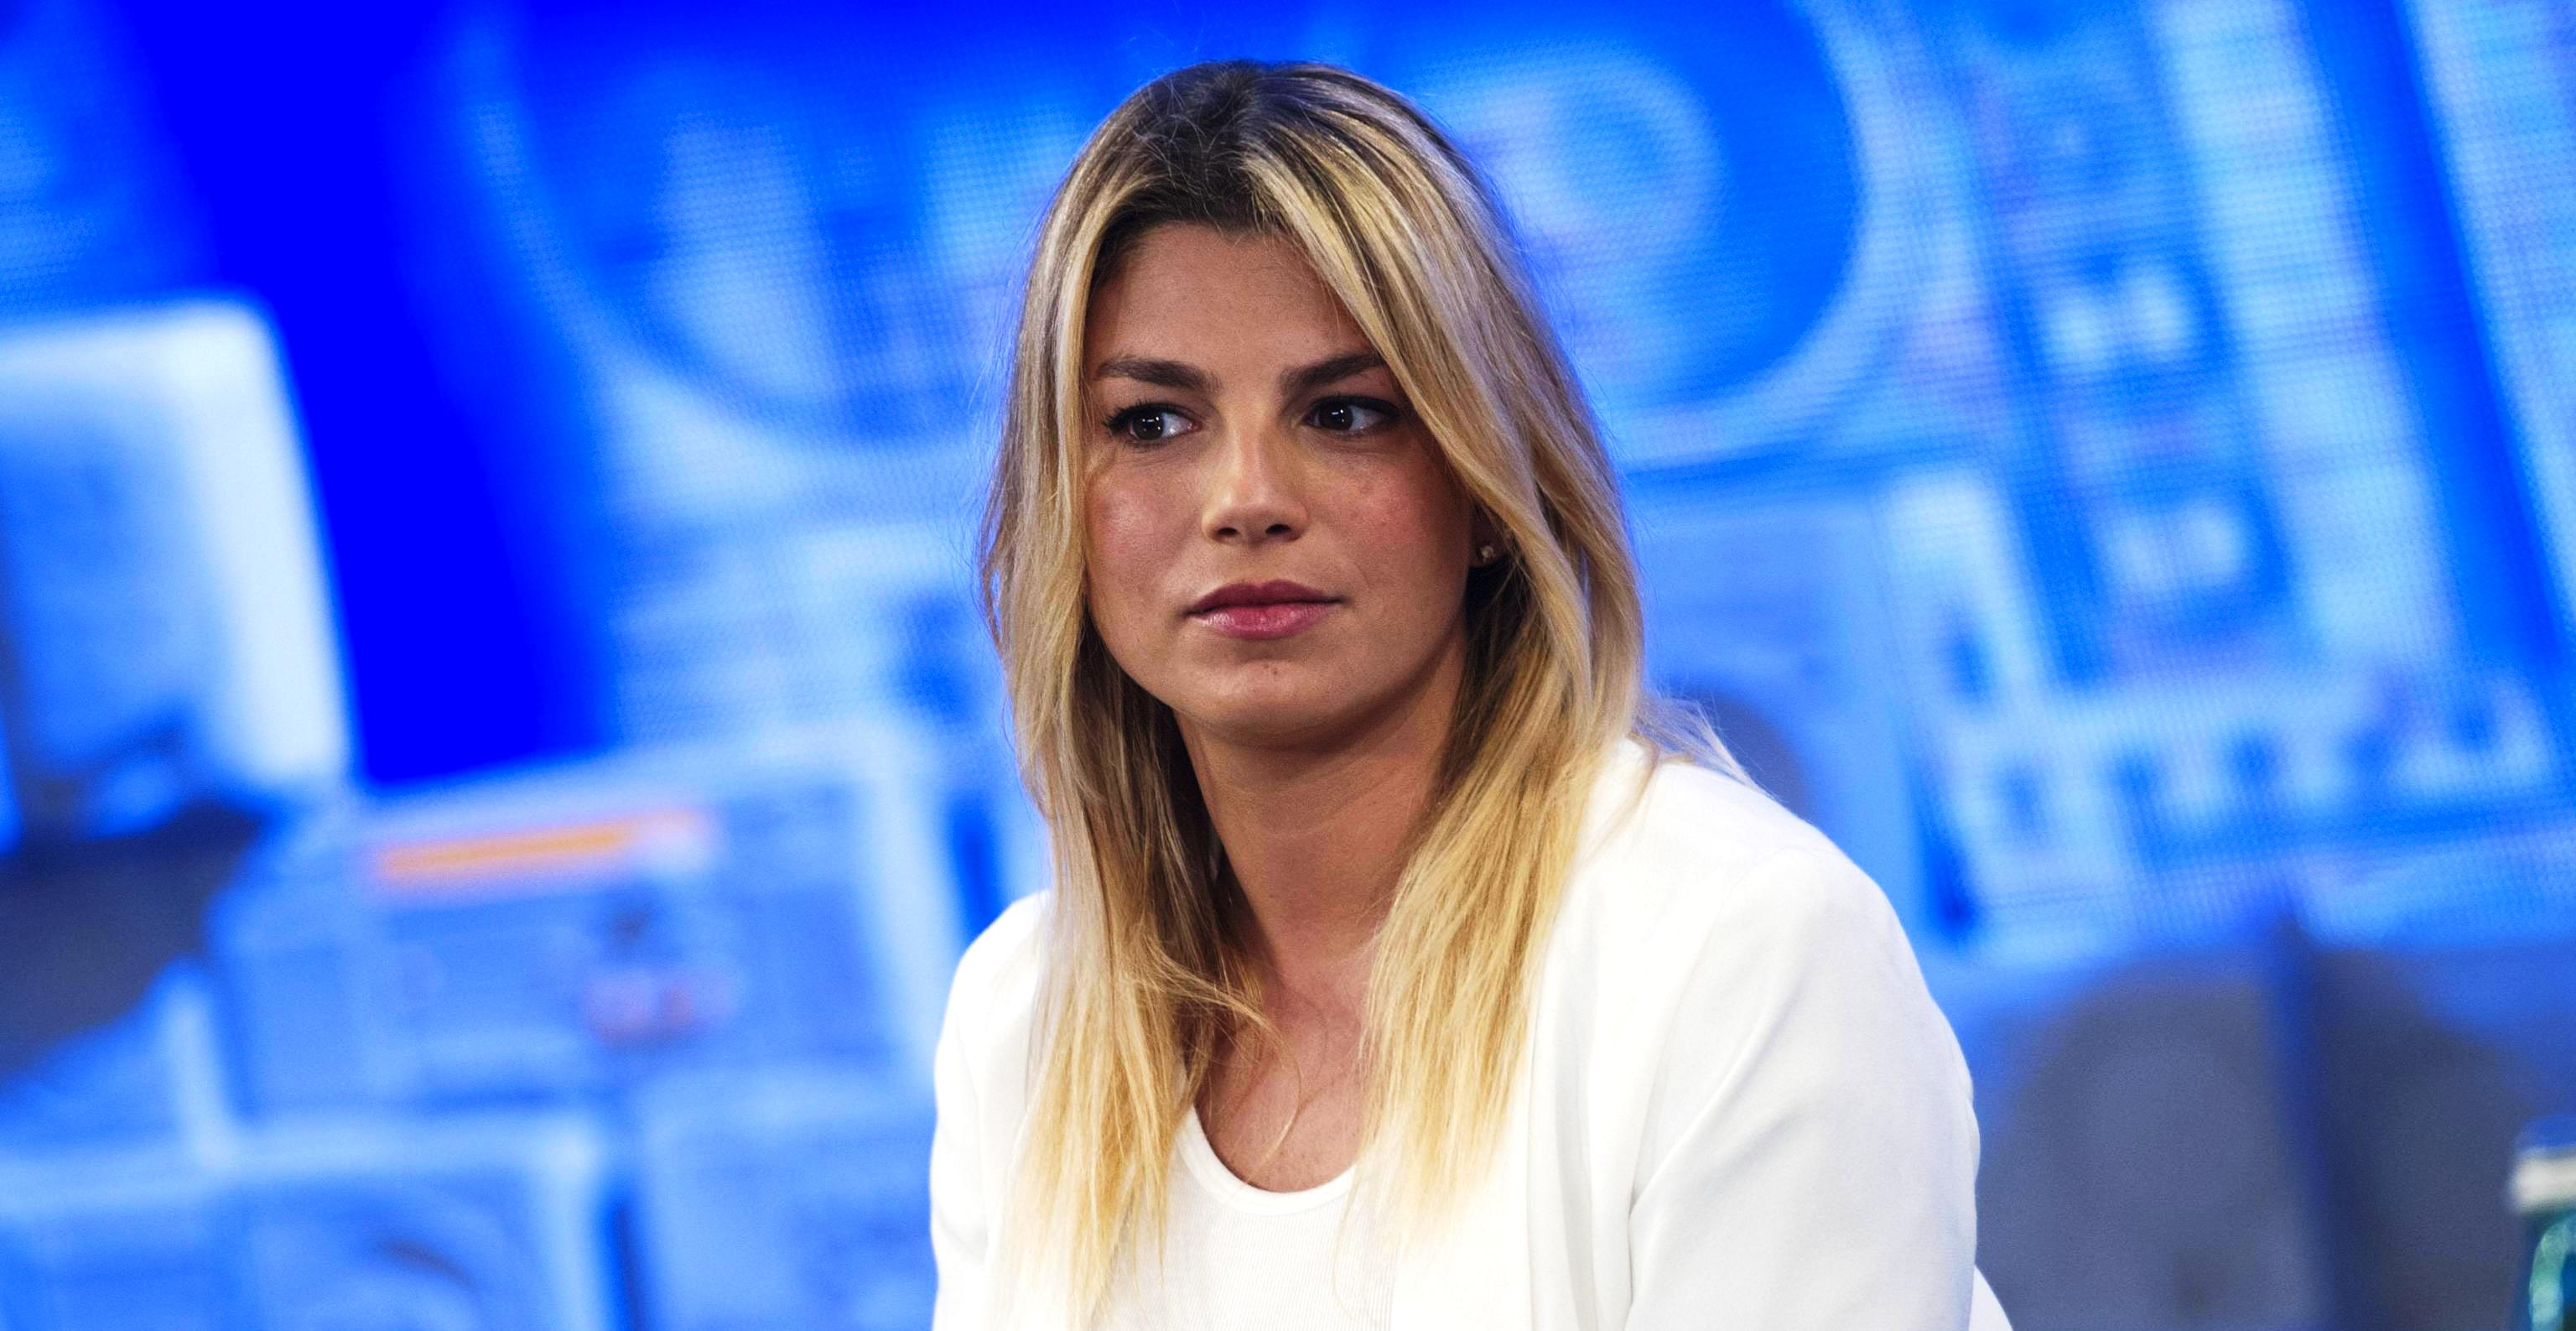 Images Emma Marrone naked (31 photos), Tits, Sideboobs, Boobs, butt 2015